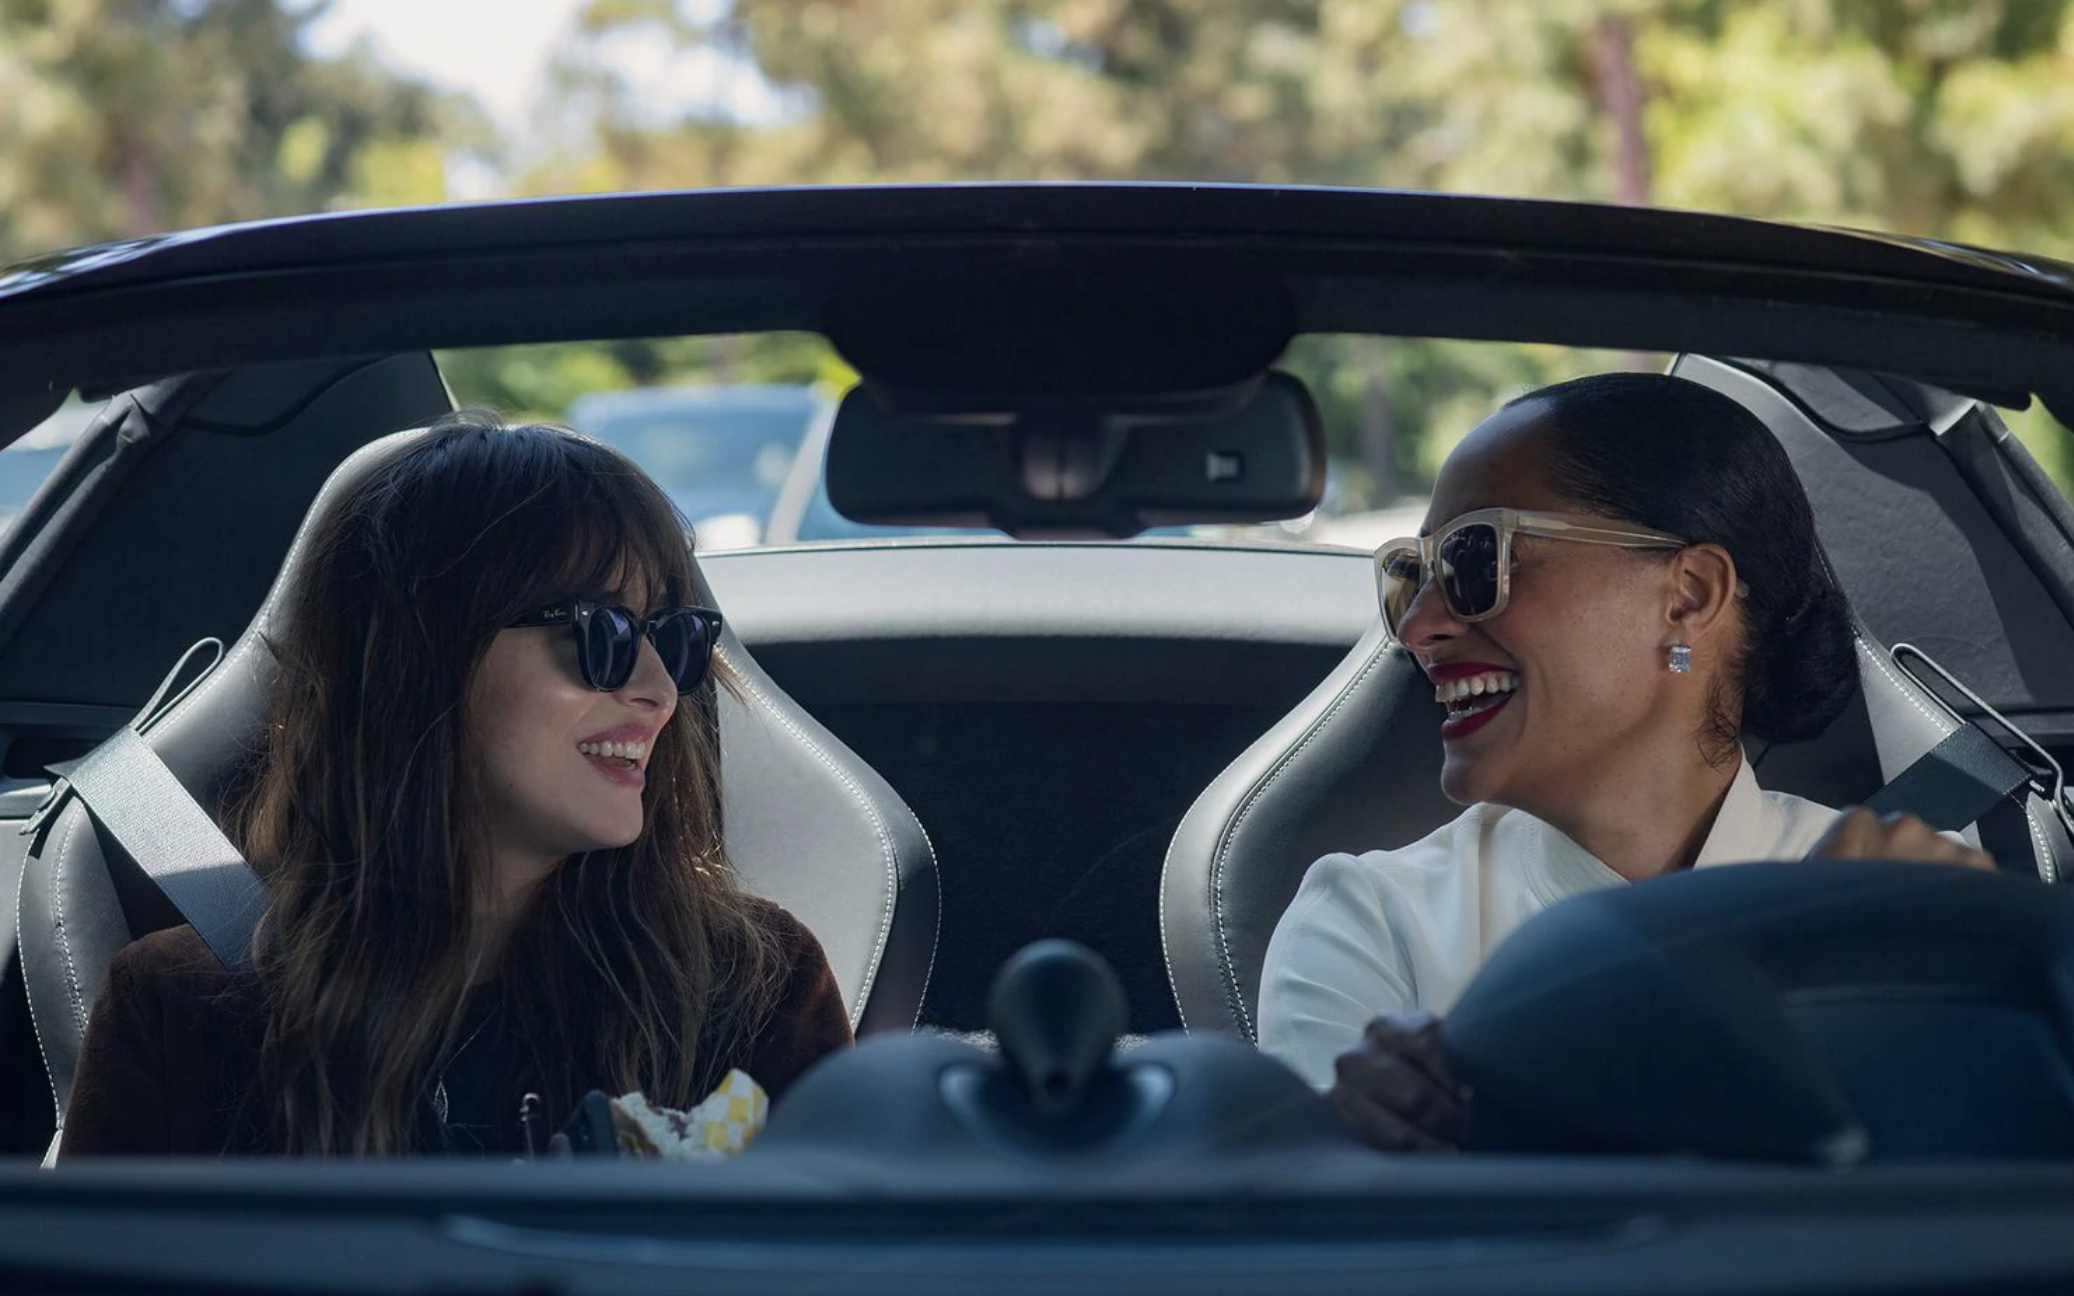 Two women smile at one another in a car.